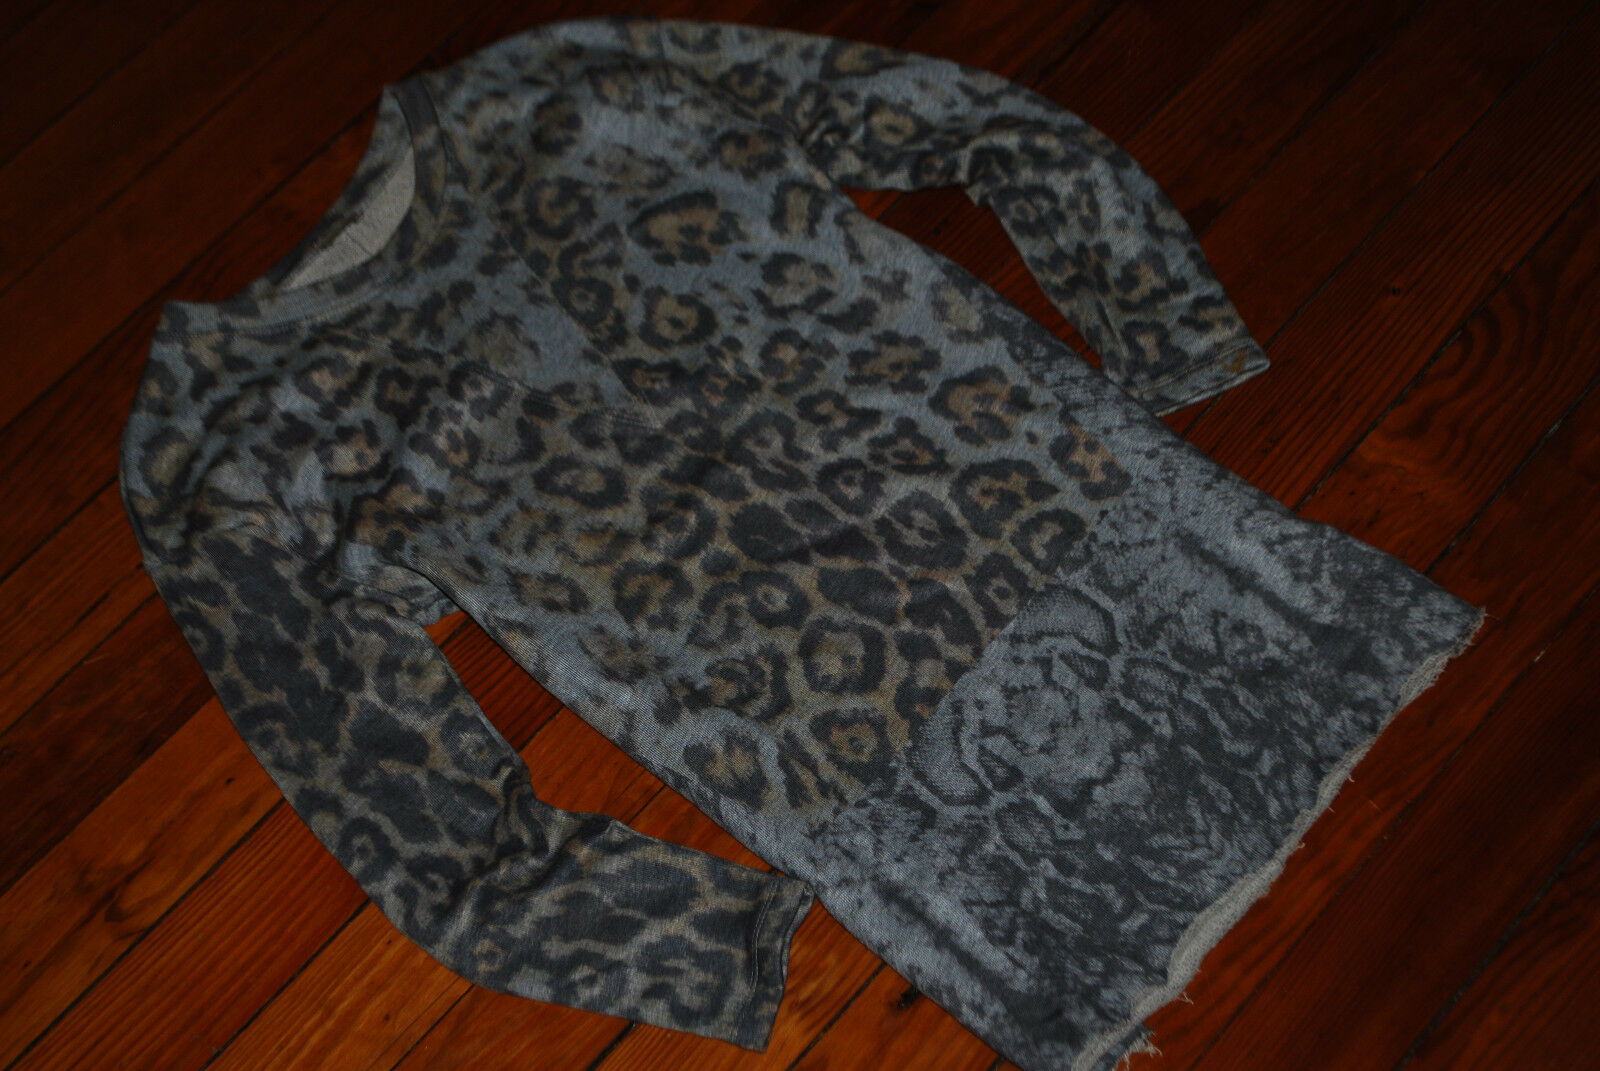 Women's ZARA Leopard Cheetah Print Fitted Long Sweater (Small)